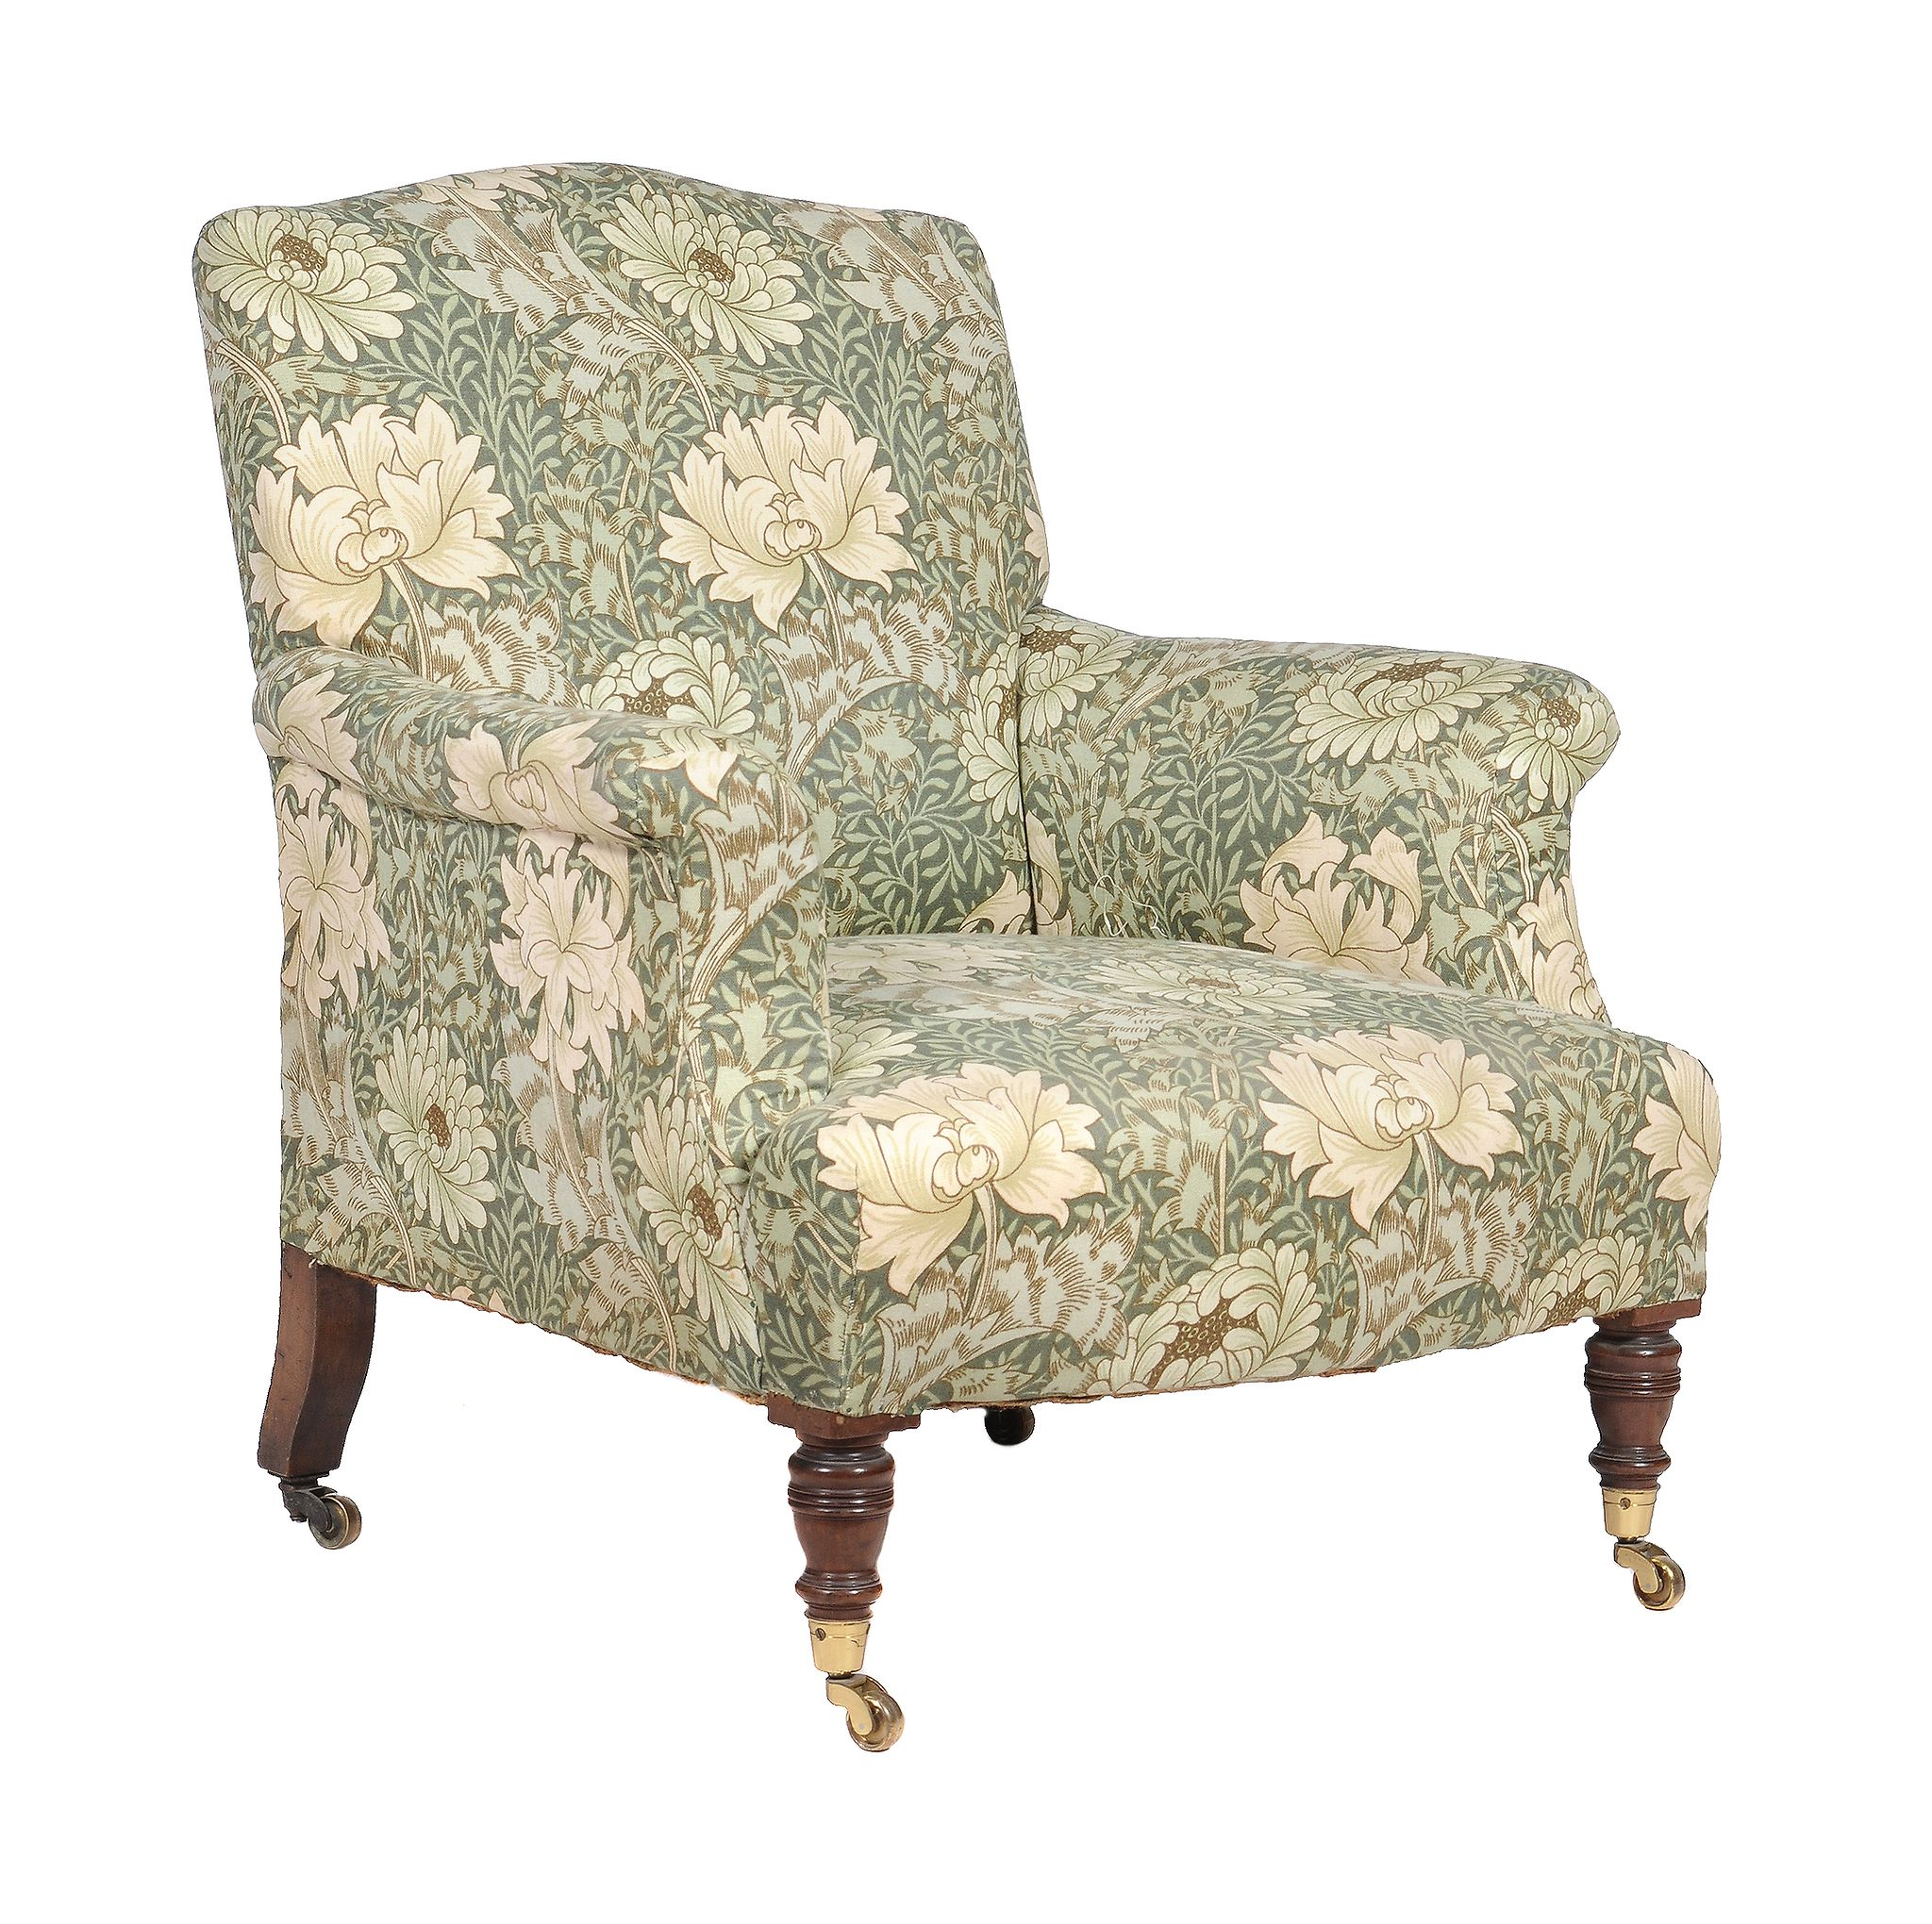 Lot 280 - A Victorian walnut and upholstered armchair by Howard and sons , last quarter 19th century, one leg